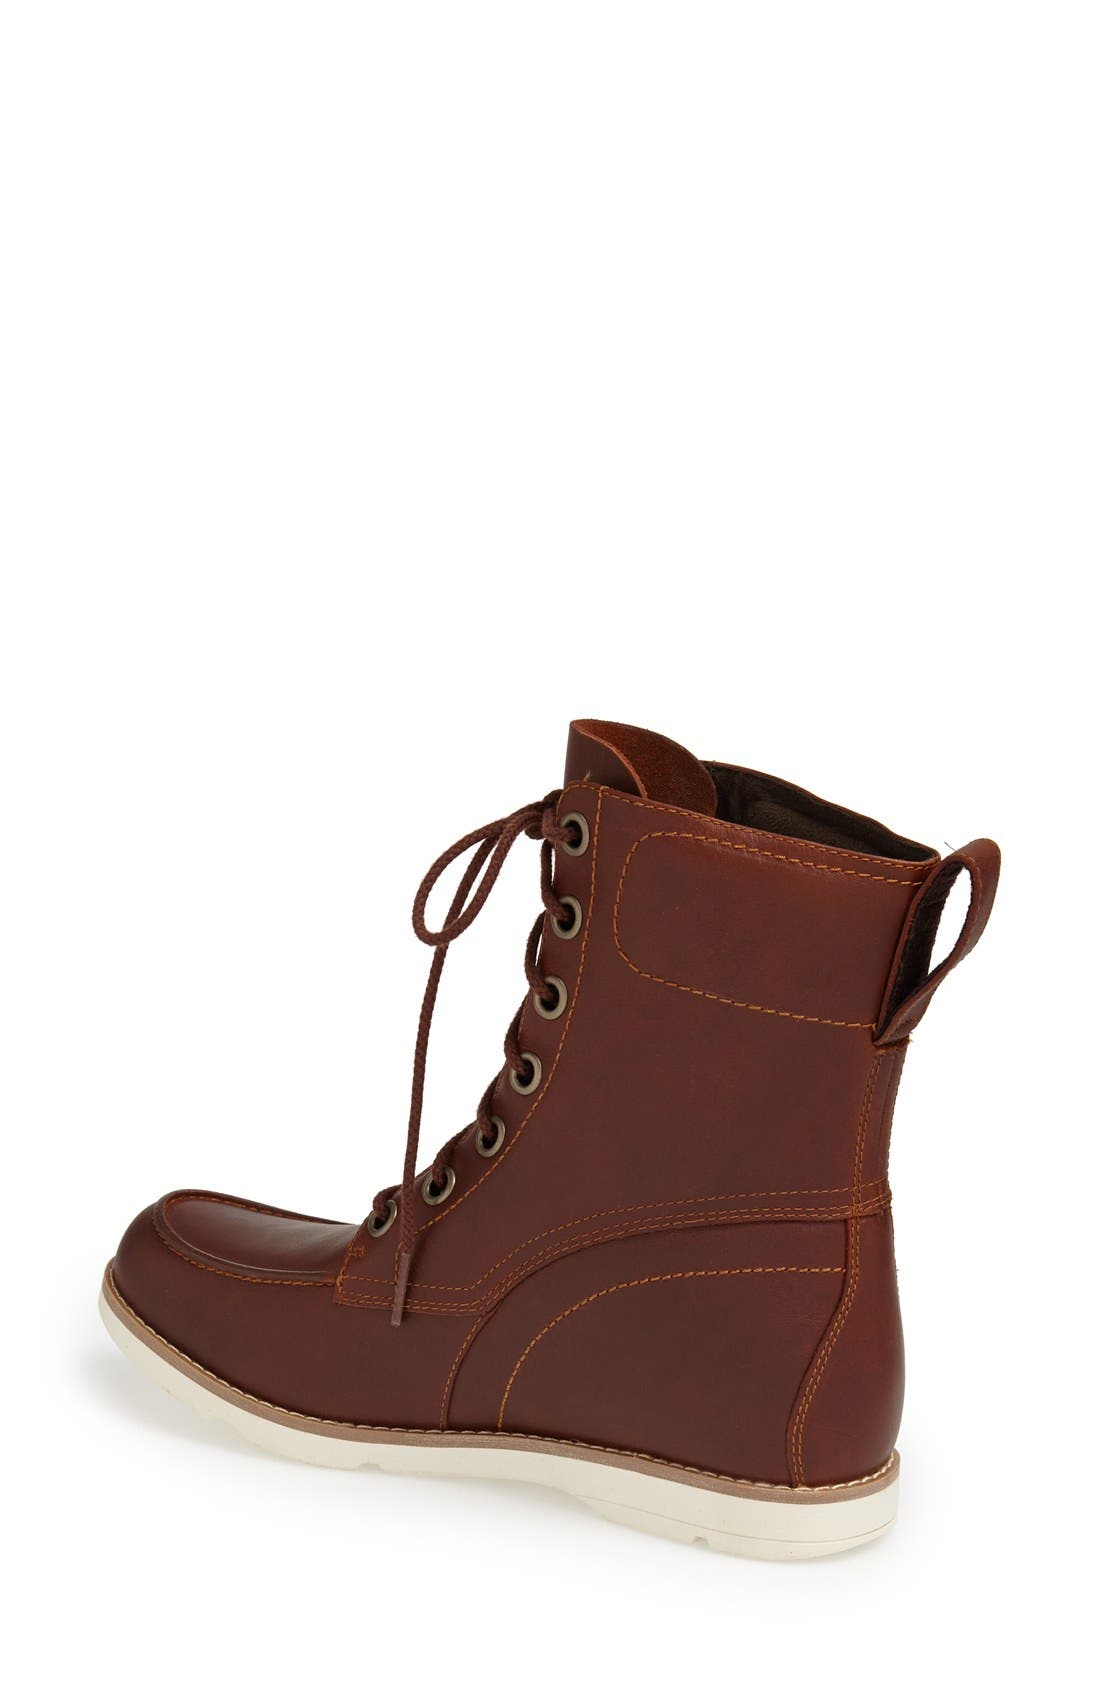 Alternate Image 2  - Timberland Earthkeepers® 'Mosely' Waterproof Leather Boot (Women)